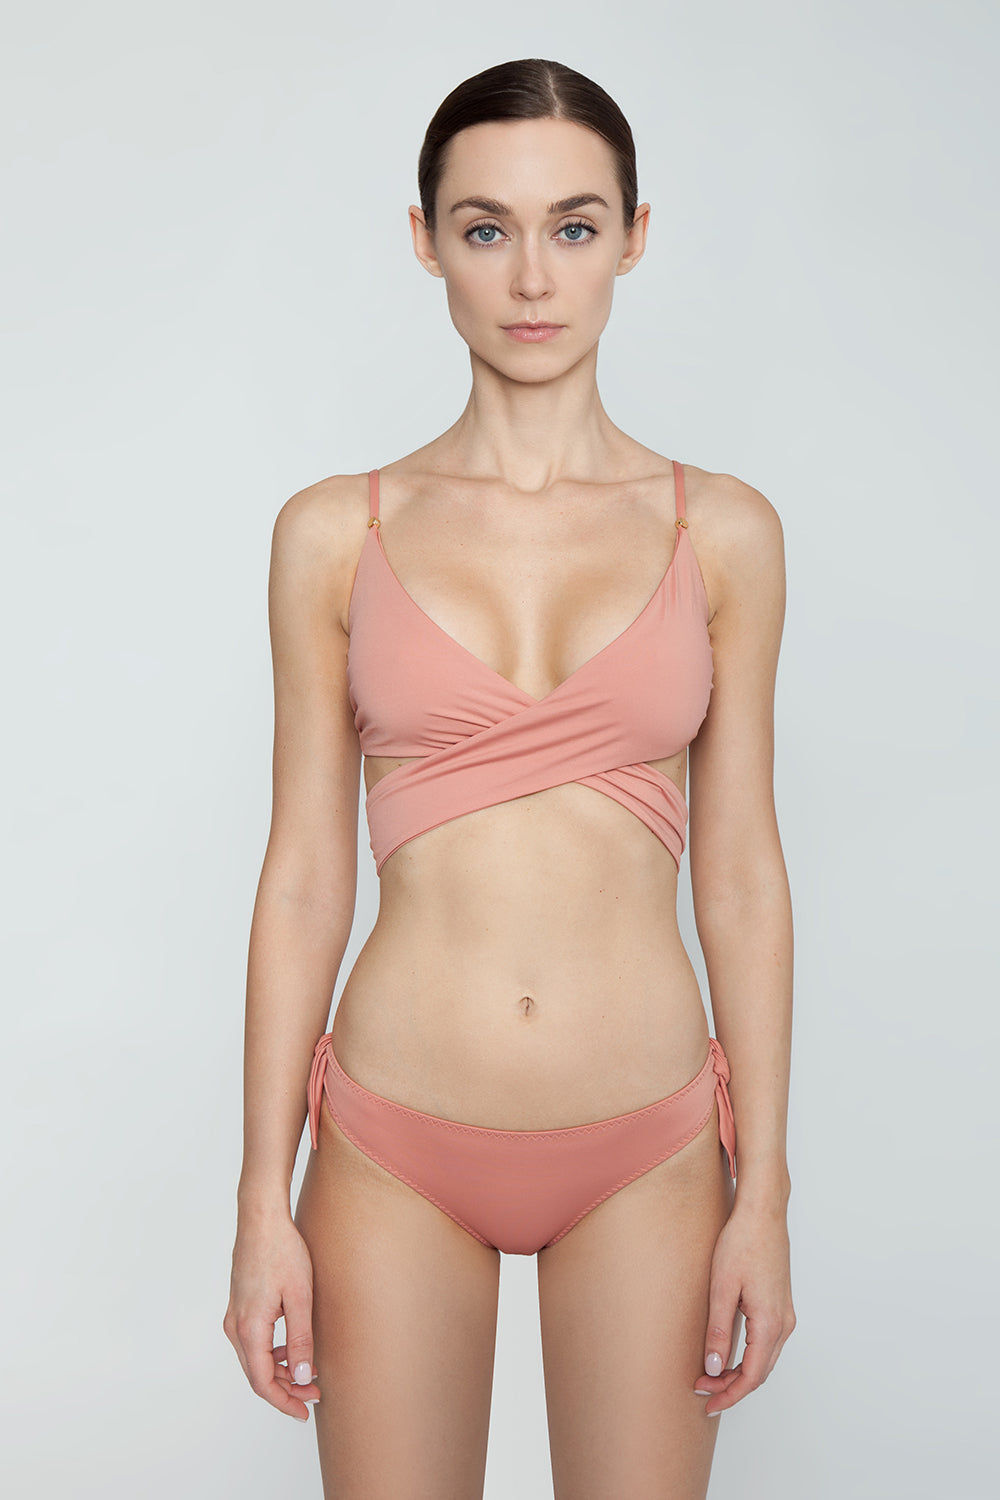 STELLA MCCARTNEY Wrap Bikini Top - Antique Rose Pink Bikini Top | Antique Rose Pink| Stella McCartney Wrap Bikini Top - Antique Rose Pink Figure-flattering true wrap bikini top in pretty dusty rose color. Soft unpadded triangle cups criss-cross below bust and tie at mid-back in a chunky feminine bow. Boned sides with slight ruching detail subtly sculpt and flatter the bust without the need for padding or underwire. Front View